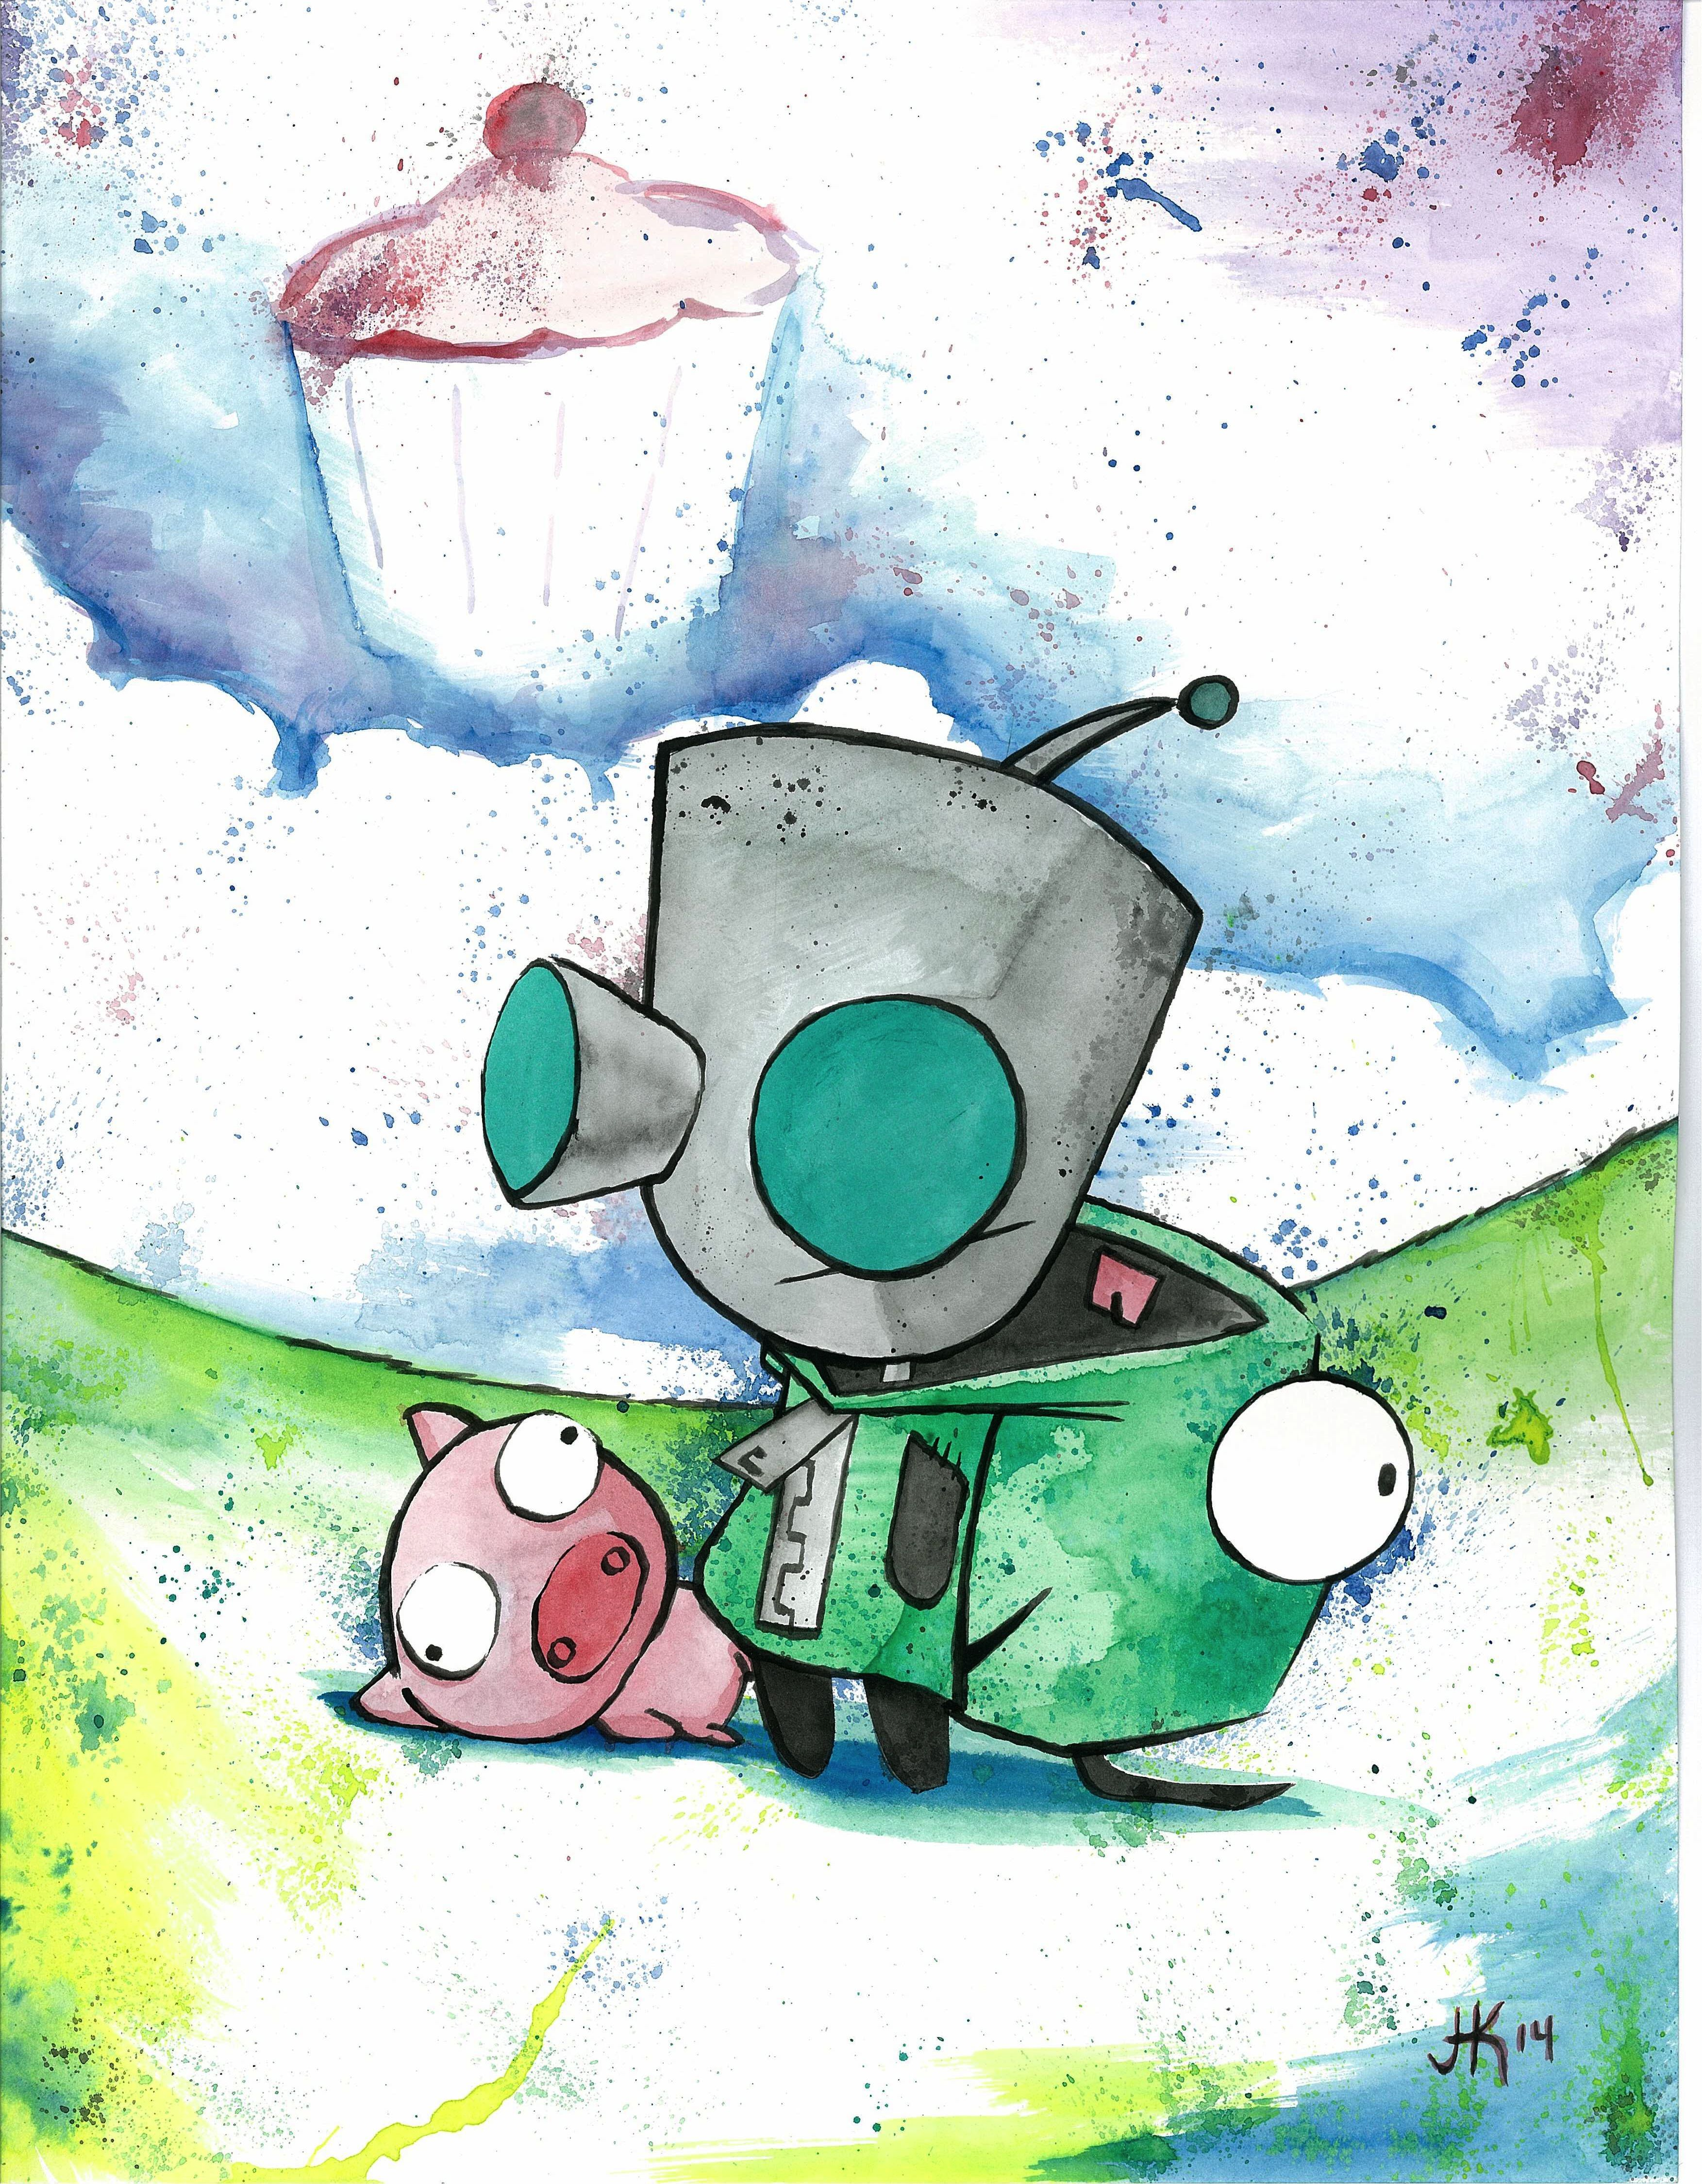 Pin By Brynn Richardson On Invader Zim Invader Zim Invader Zim